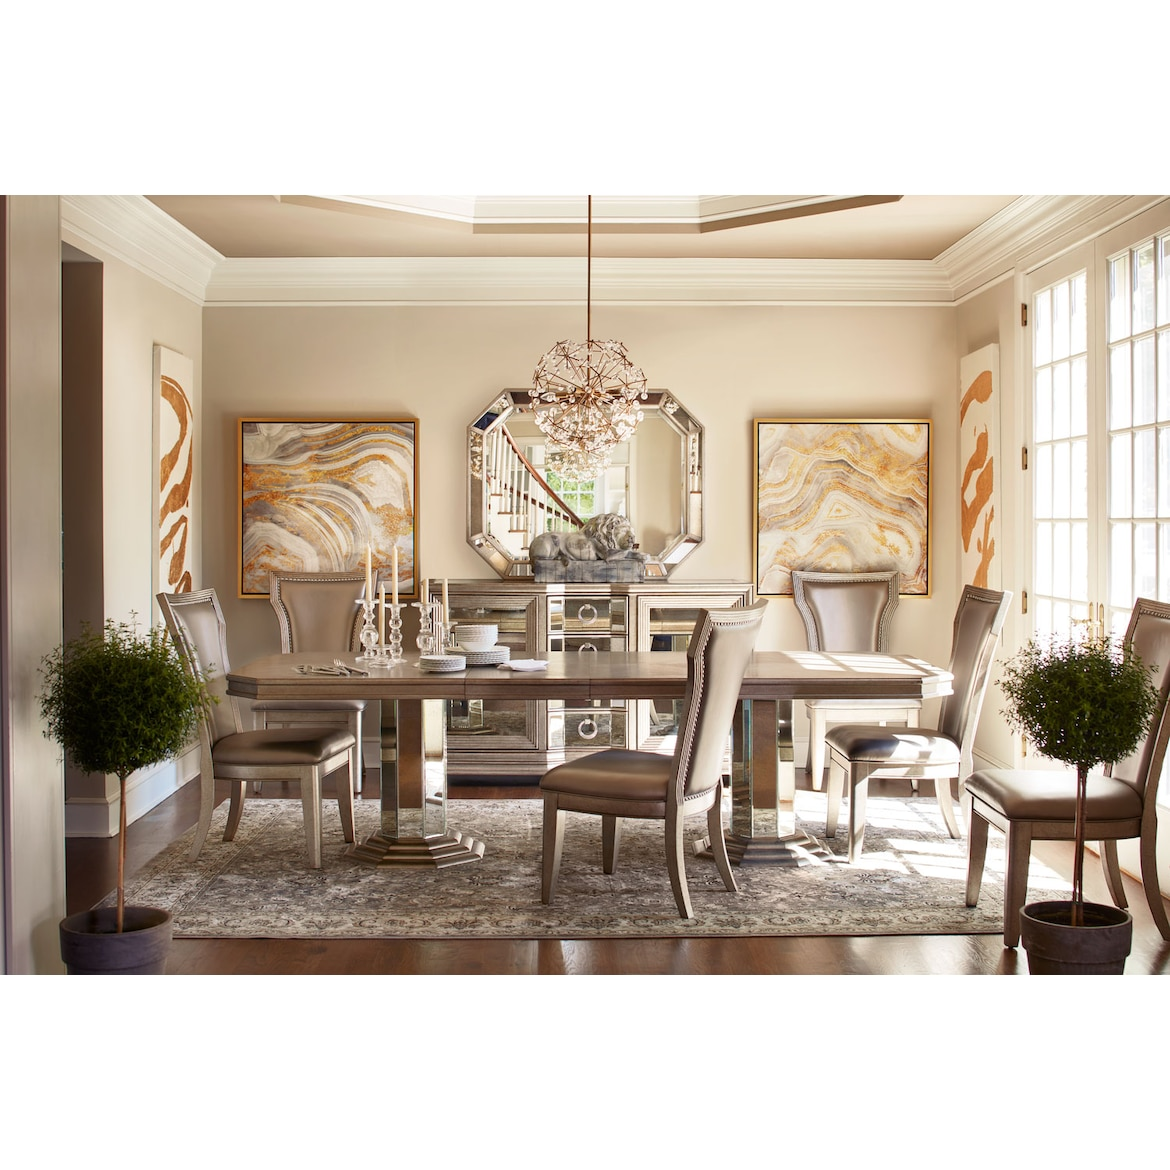 7217a50e8e6c Angelina Double-Pedestal Table and 6 Side Chairs - Metallic | Value ...